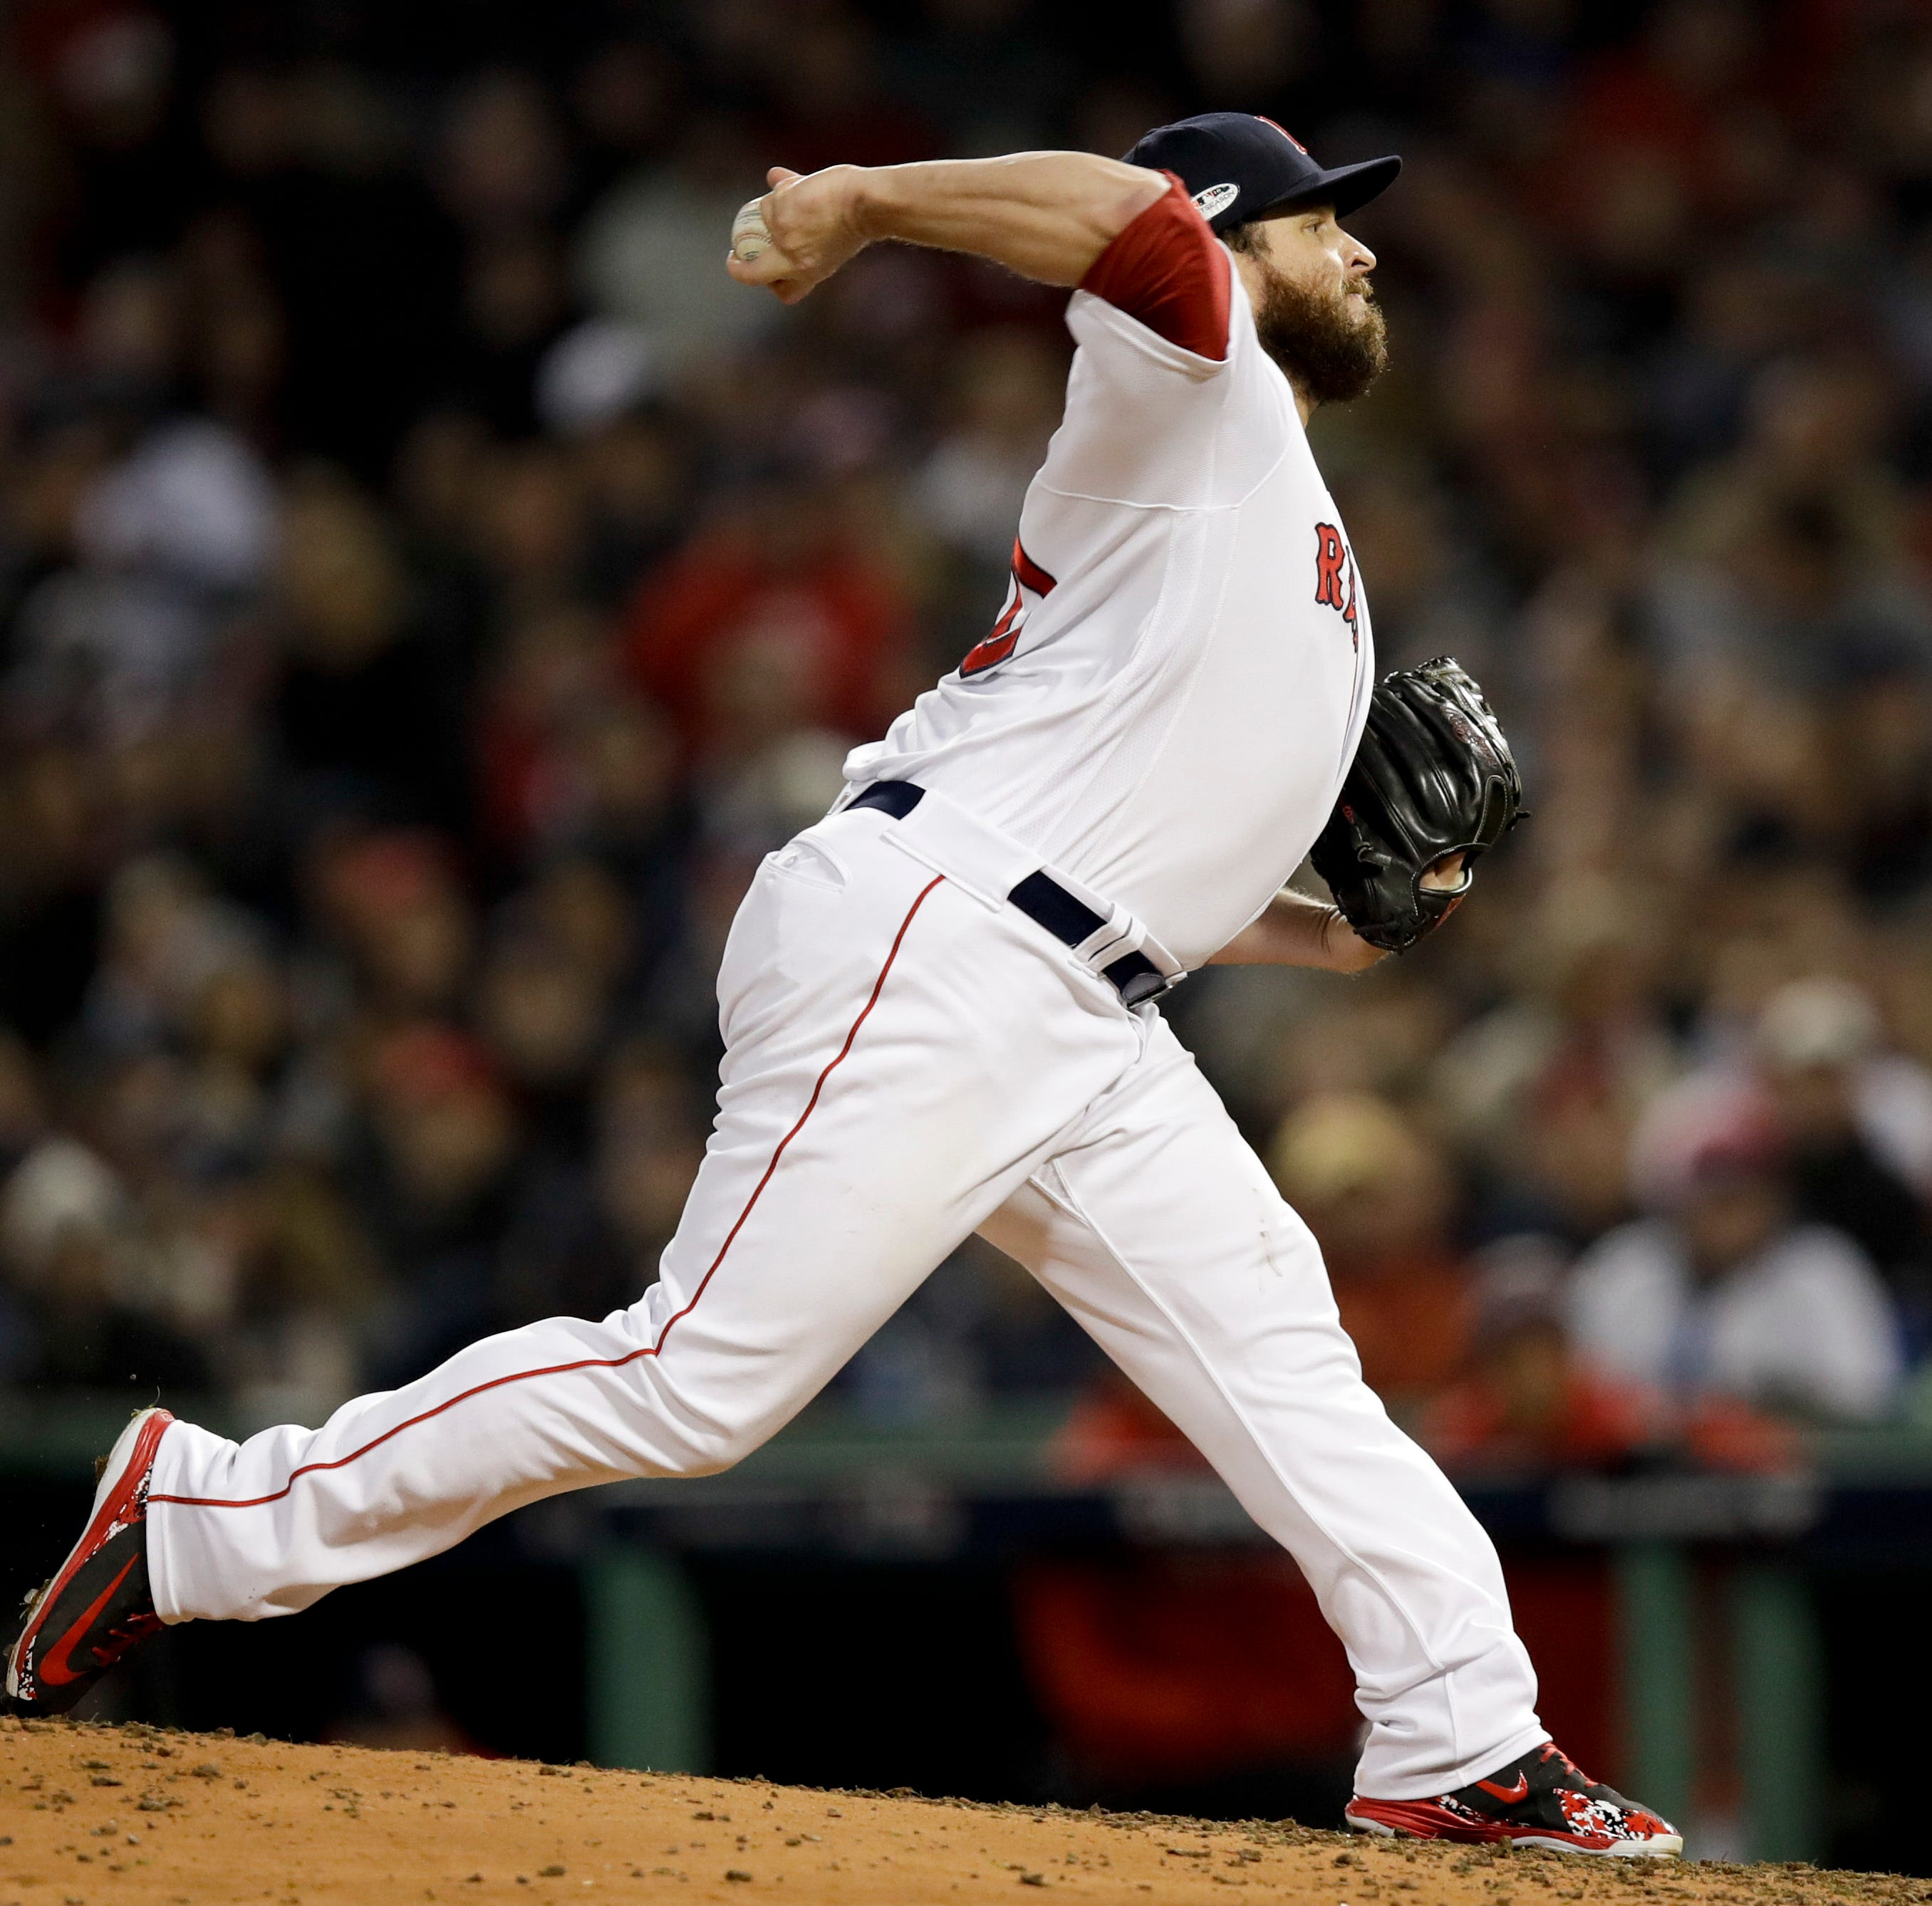 Newberry: Ryan Brasier out from behind the plate and throwing in 2018 World Series